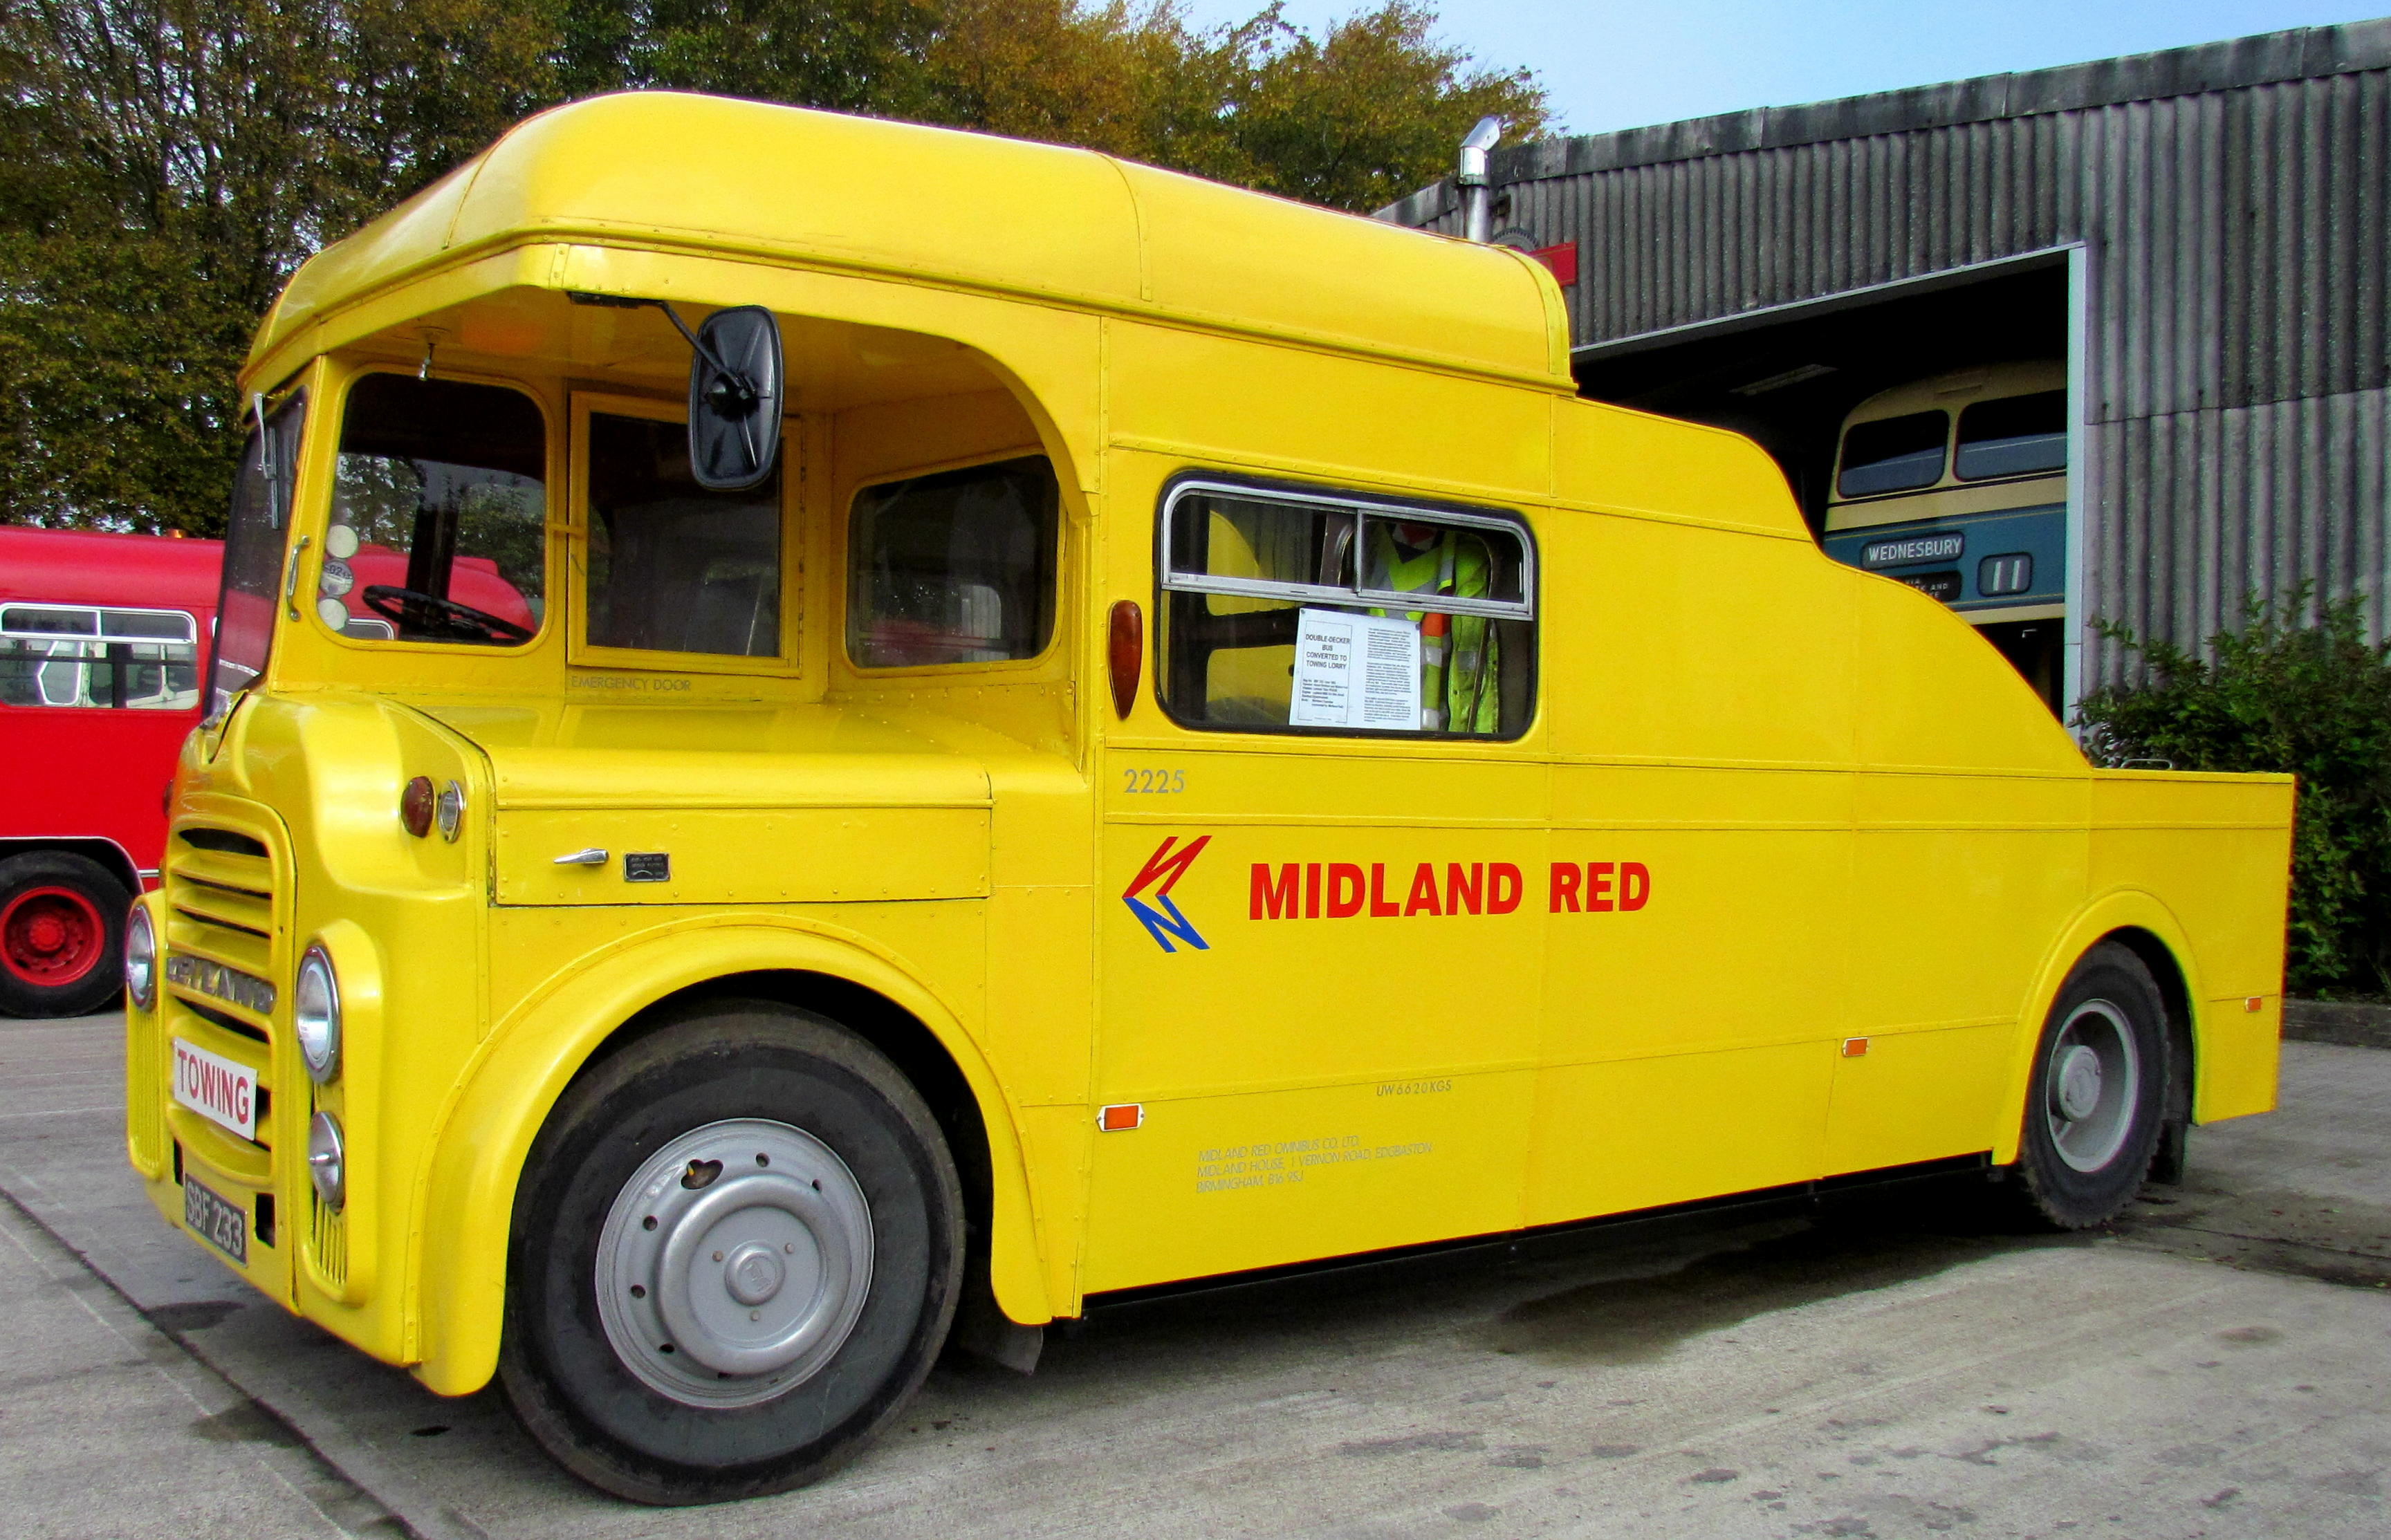 File:Midland Red towing vehicle 2225 (SBF 233), Wythall Transport Museum,